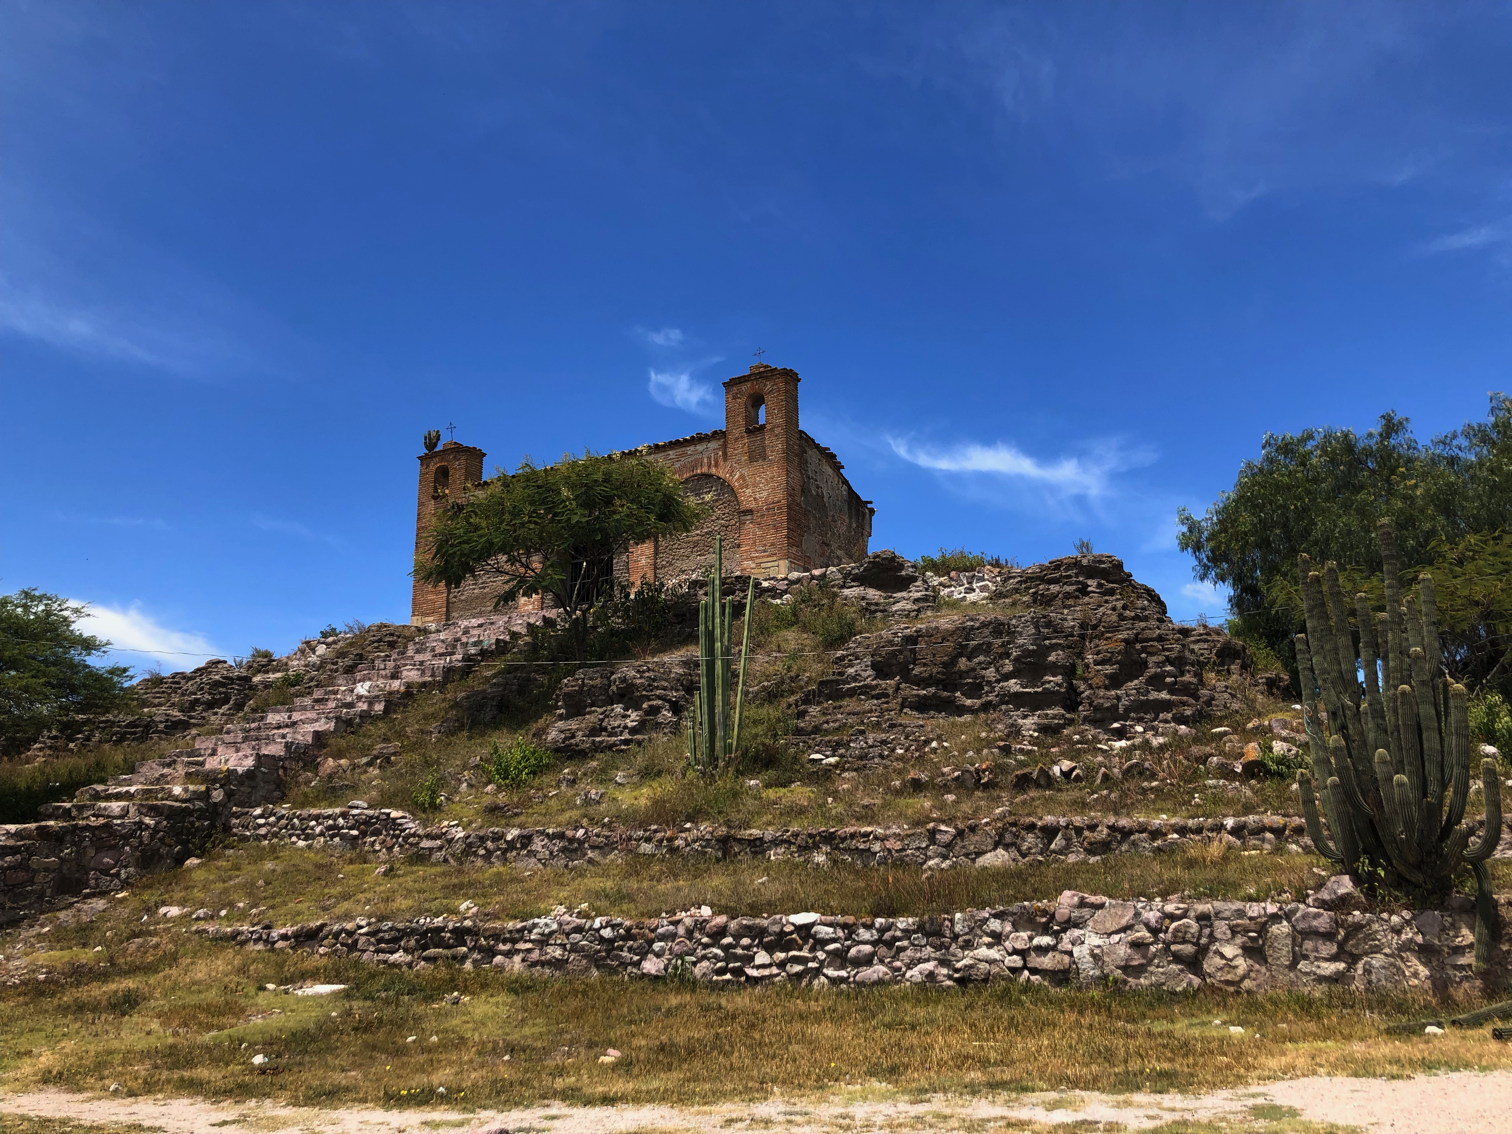 Photo of a building from ‎⁨San Pablo Villa de Mitla⁩, ⁨Oaxaca⁩, ⁨Mexico⁩